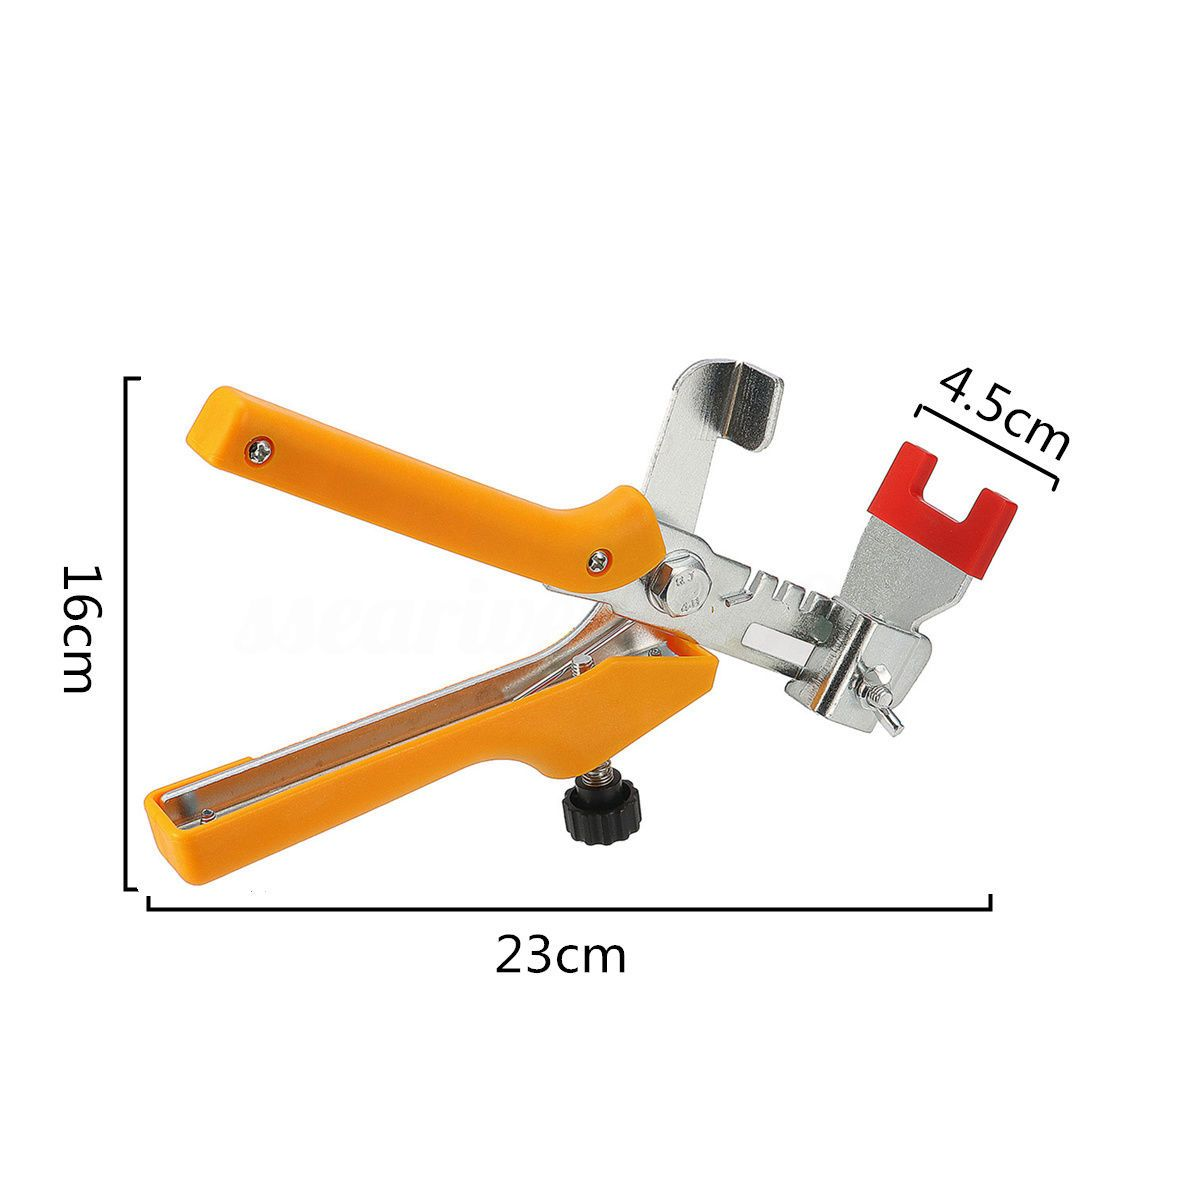 New leveling system wall floor pliers mayitr ground floor ceramic new leveling system wall floor pliers mayitr ground floor ceramic tile leveling system tiling installation tools dailygadgetfo Image collections